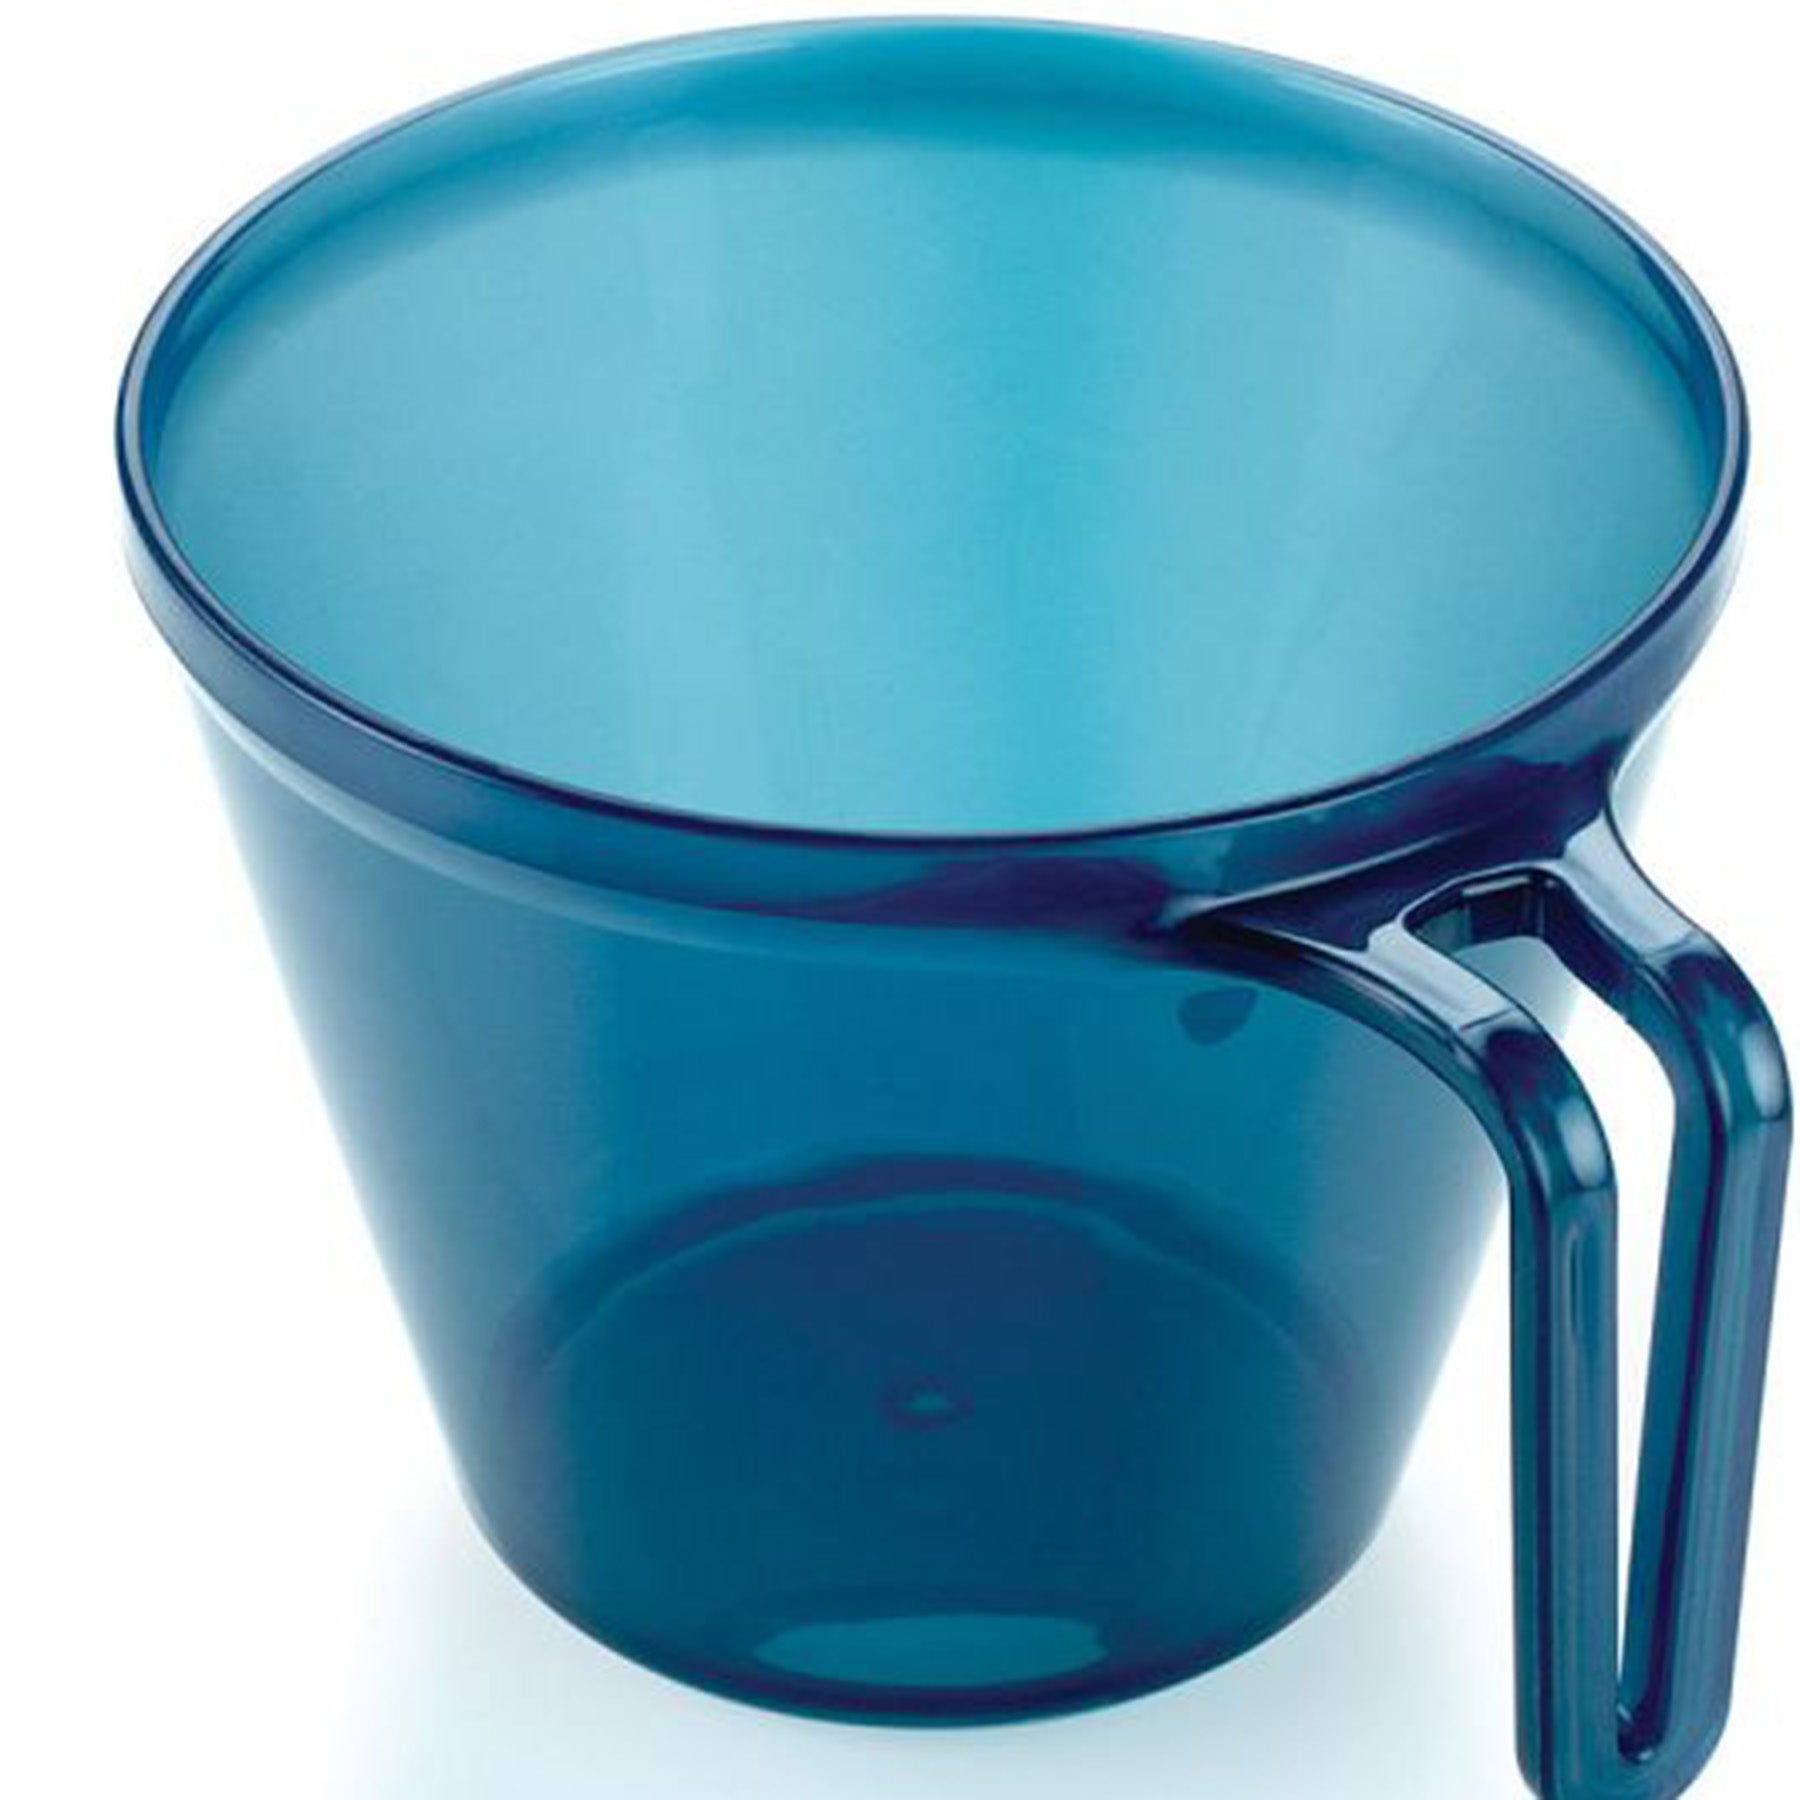 infinity polycarbonate outdoor mug 12oz. blue